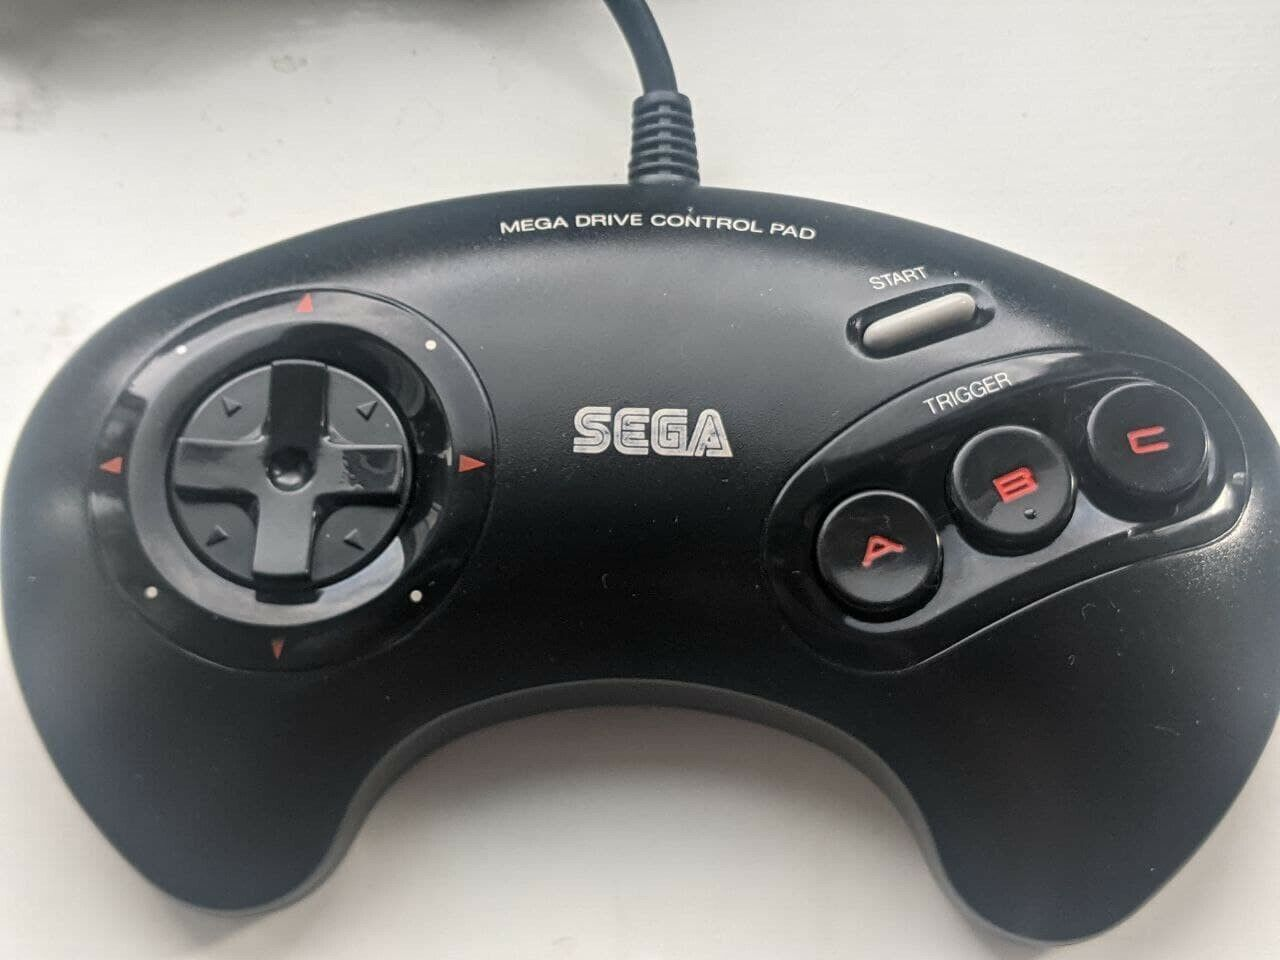 Sega Megadrive Controller - Model 1650 - Grey Button w/ Red Text - Fully Tested